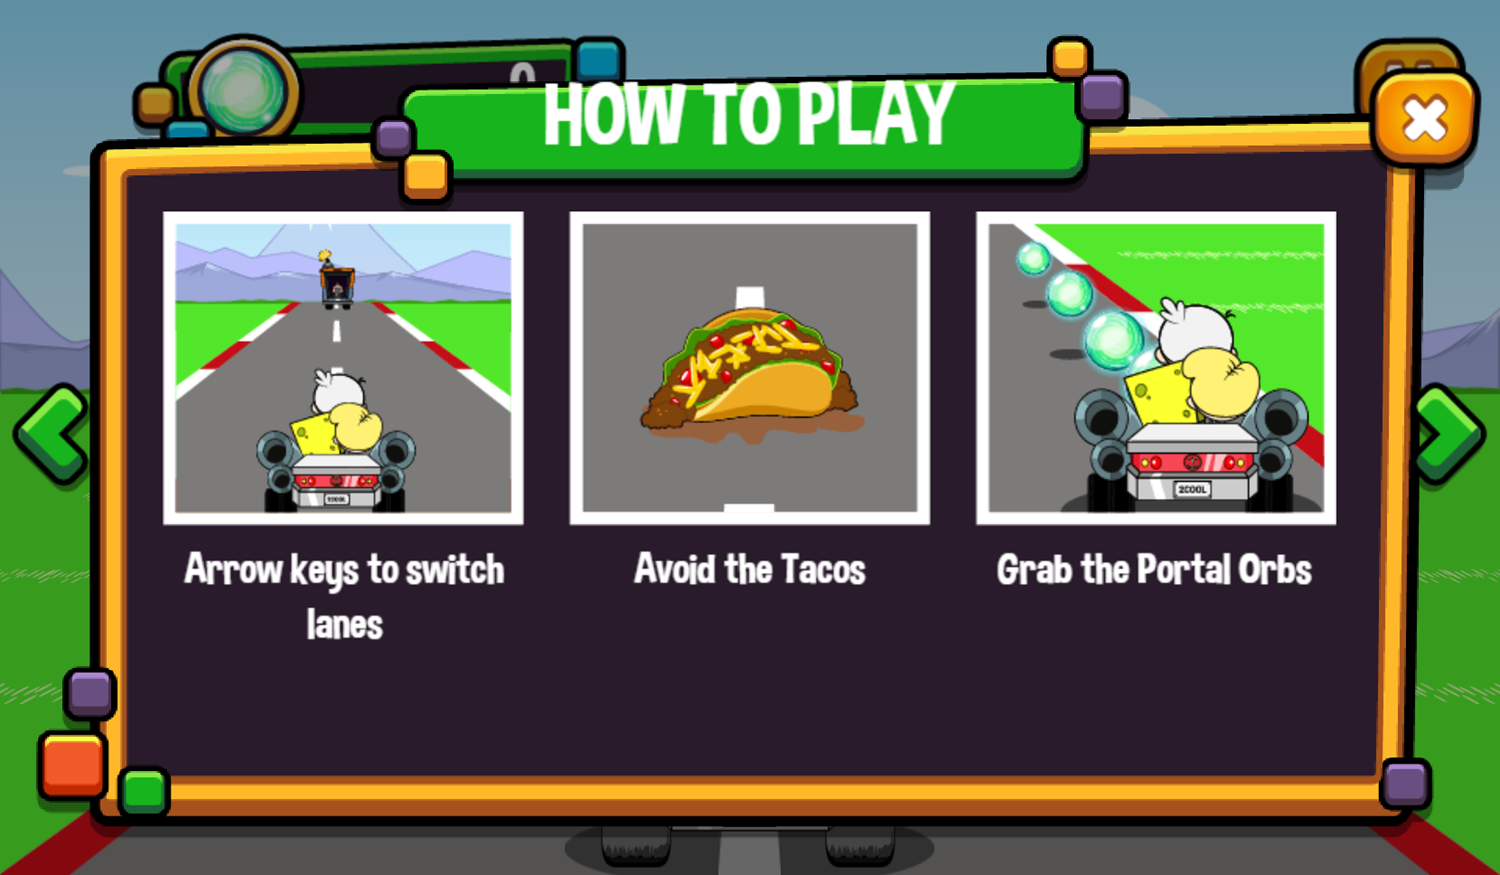 Portal Chase Game Taco Dodge How To Play Screenshot.